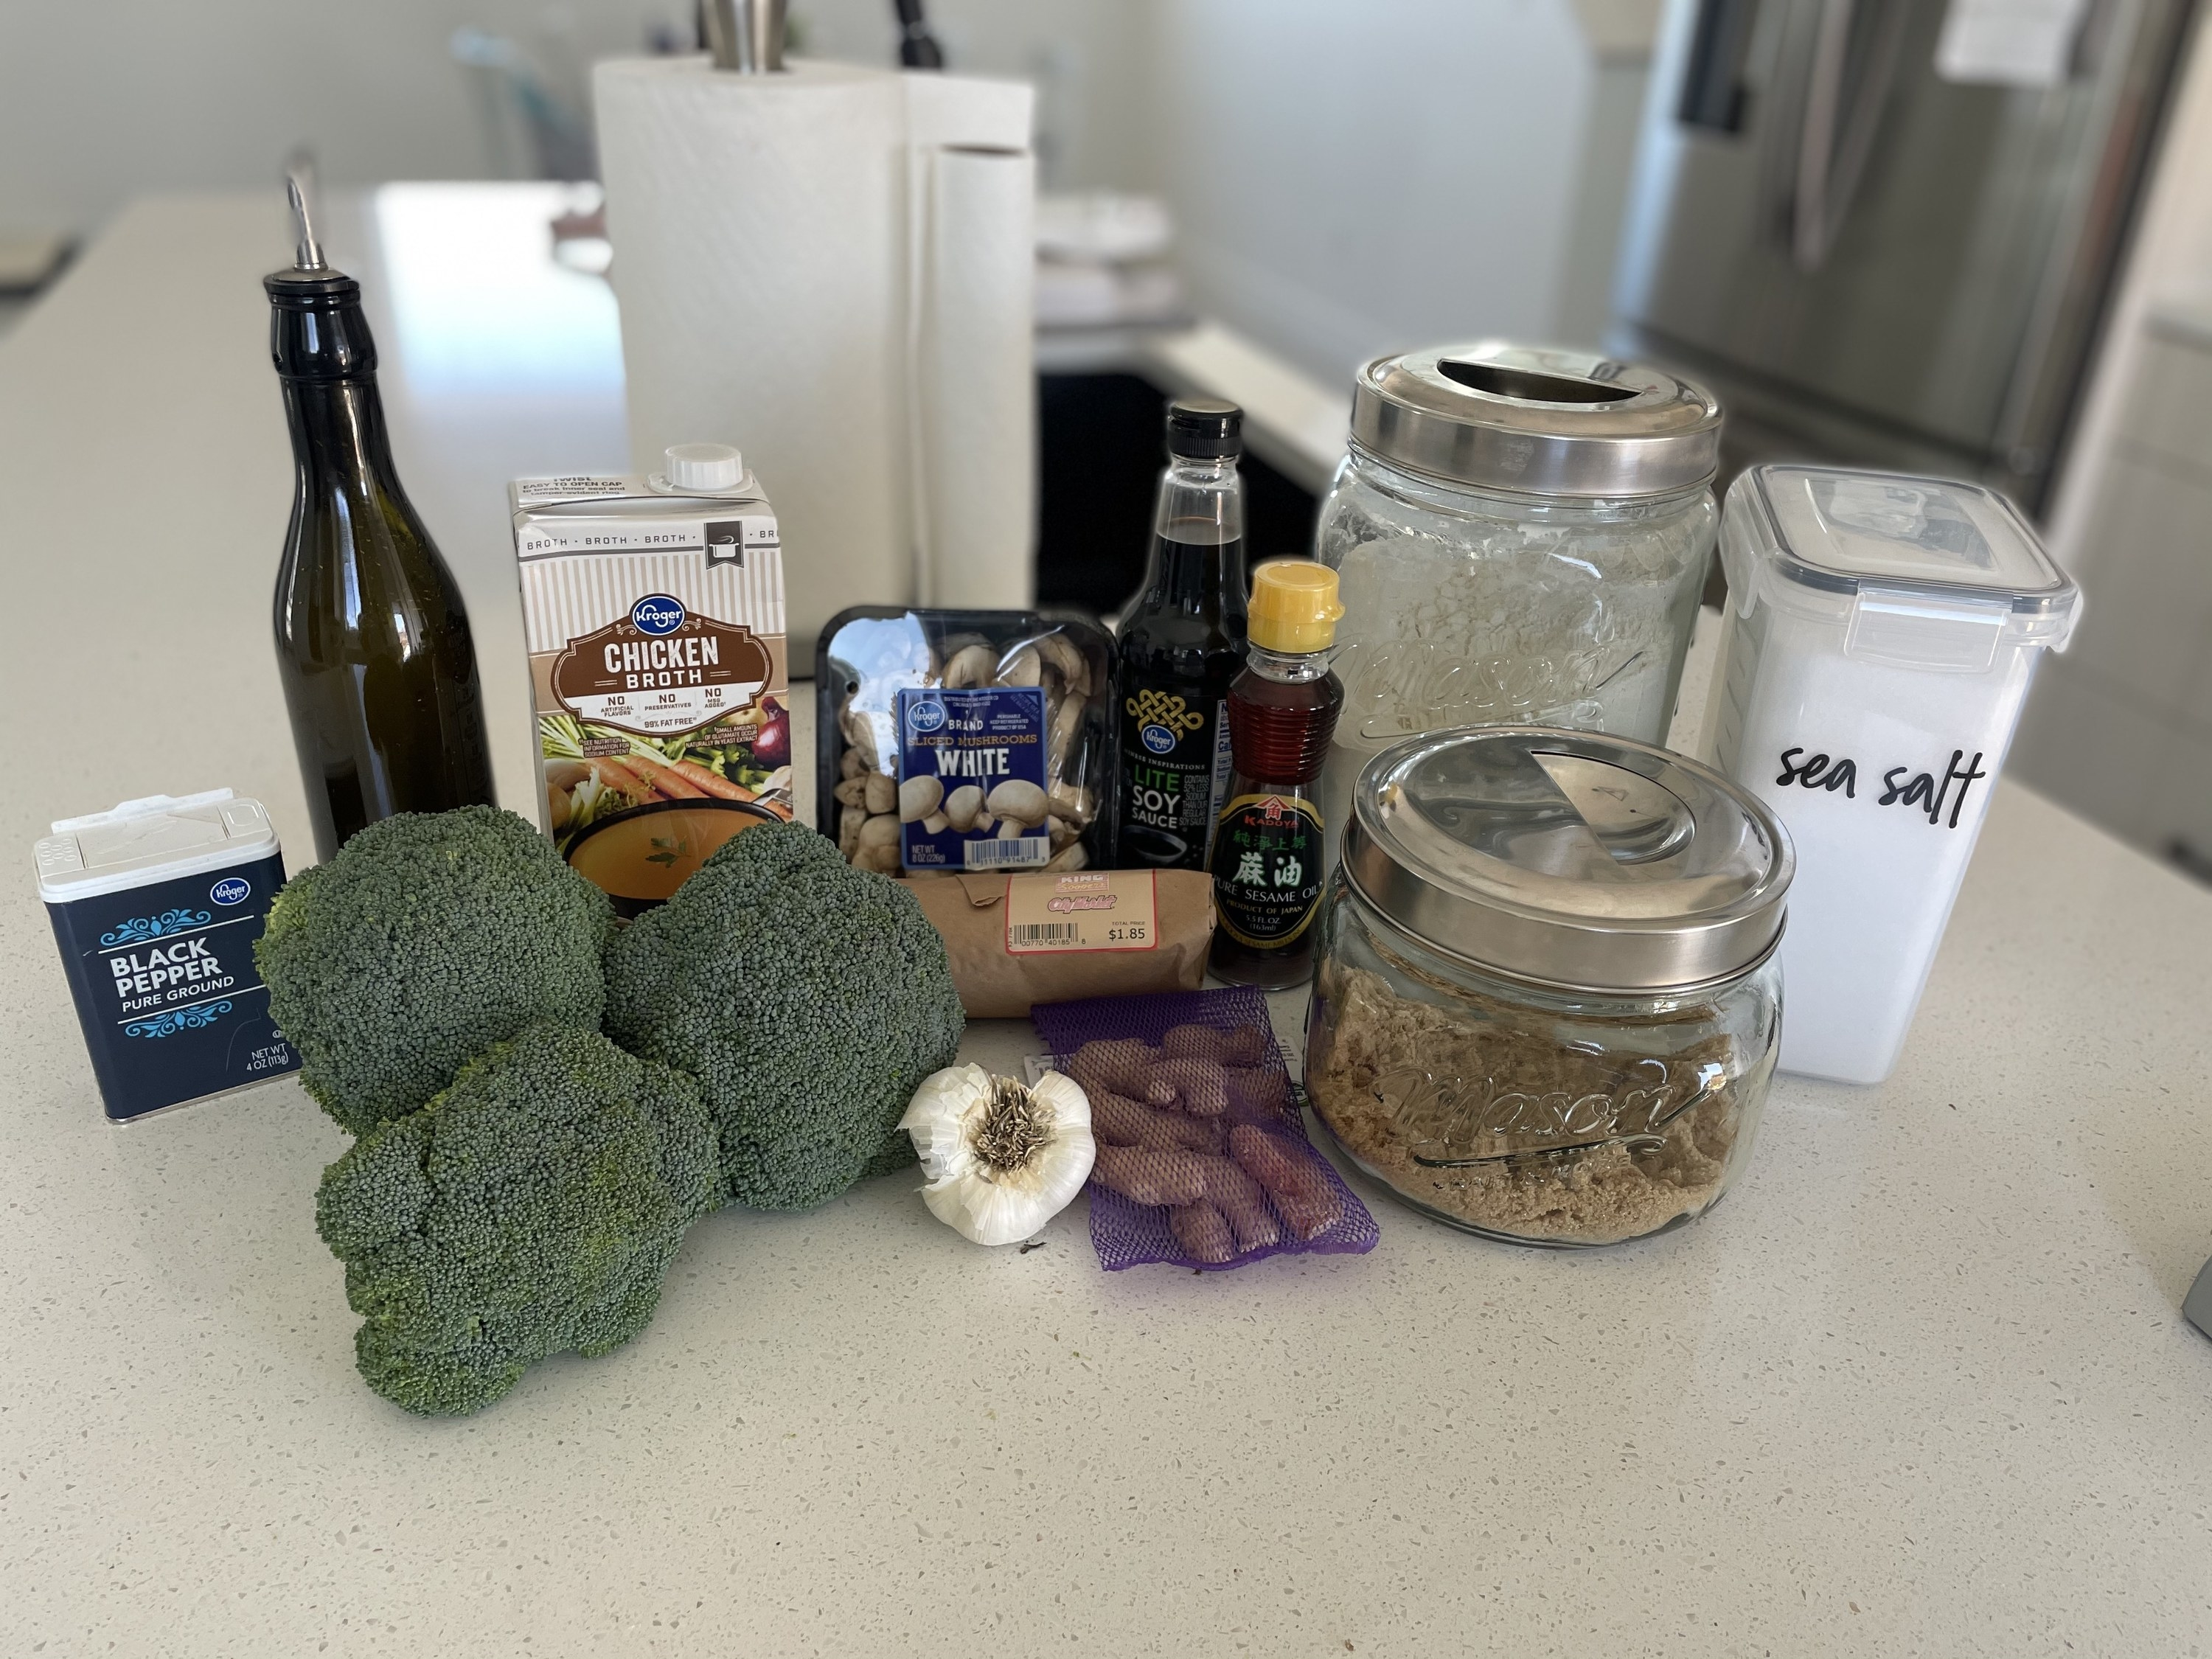 Ingredients for stirfry